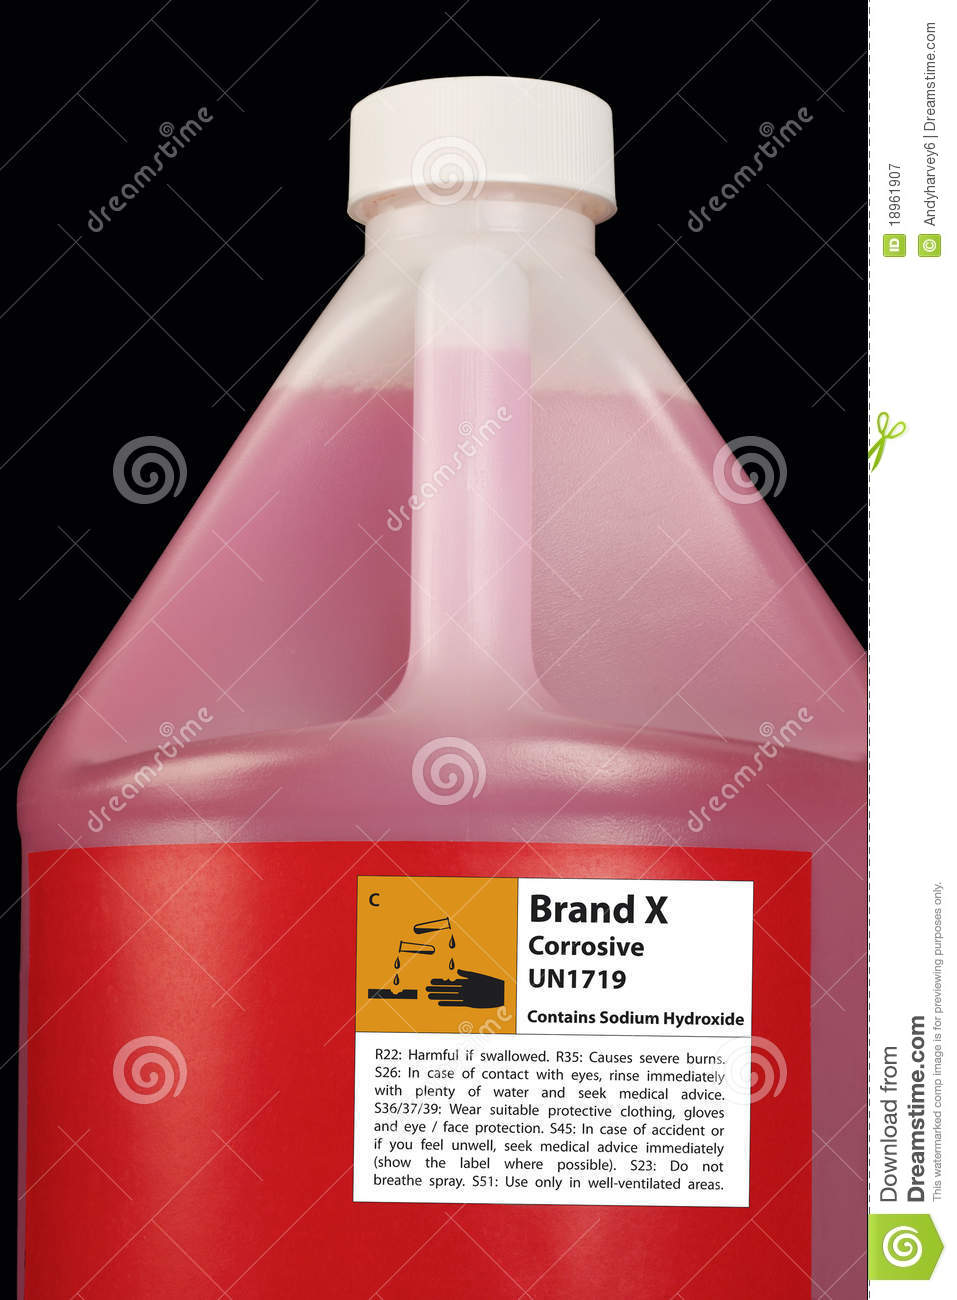 Corrosive Chemical Cleaner Royalty Free Stock Photography